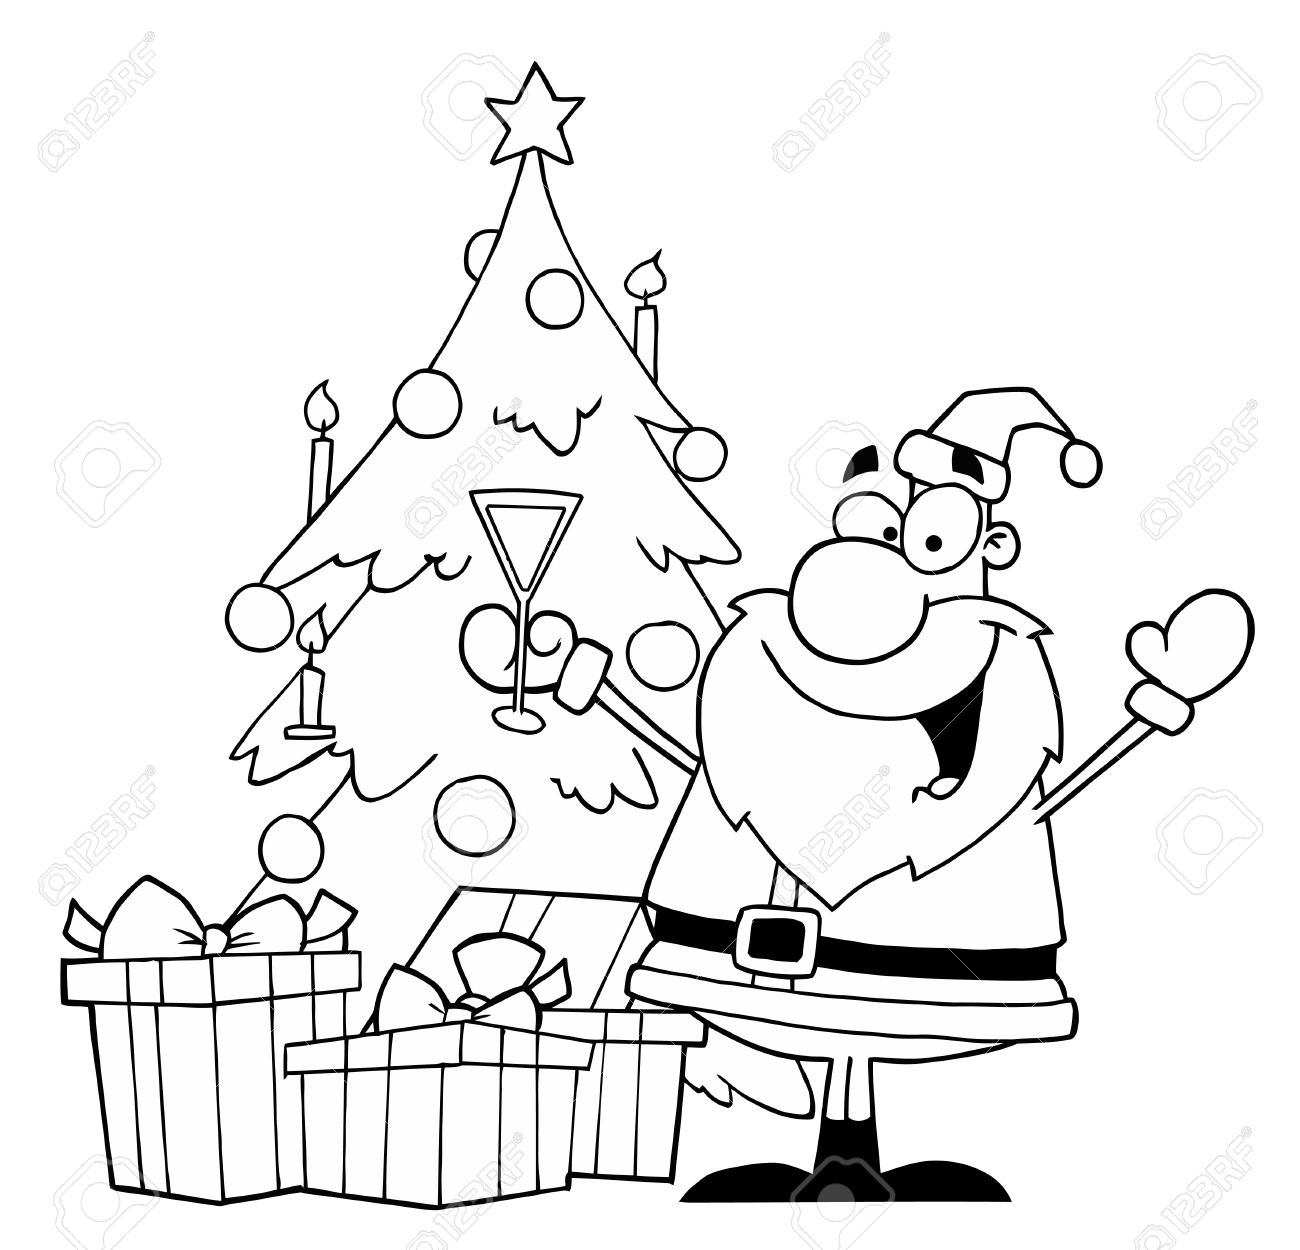 black and white coloring page outline of santa drinking champagne by a christmas tree stock vector